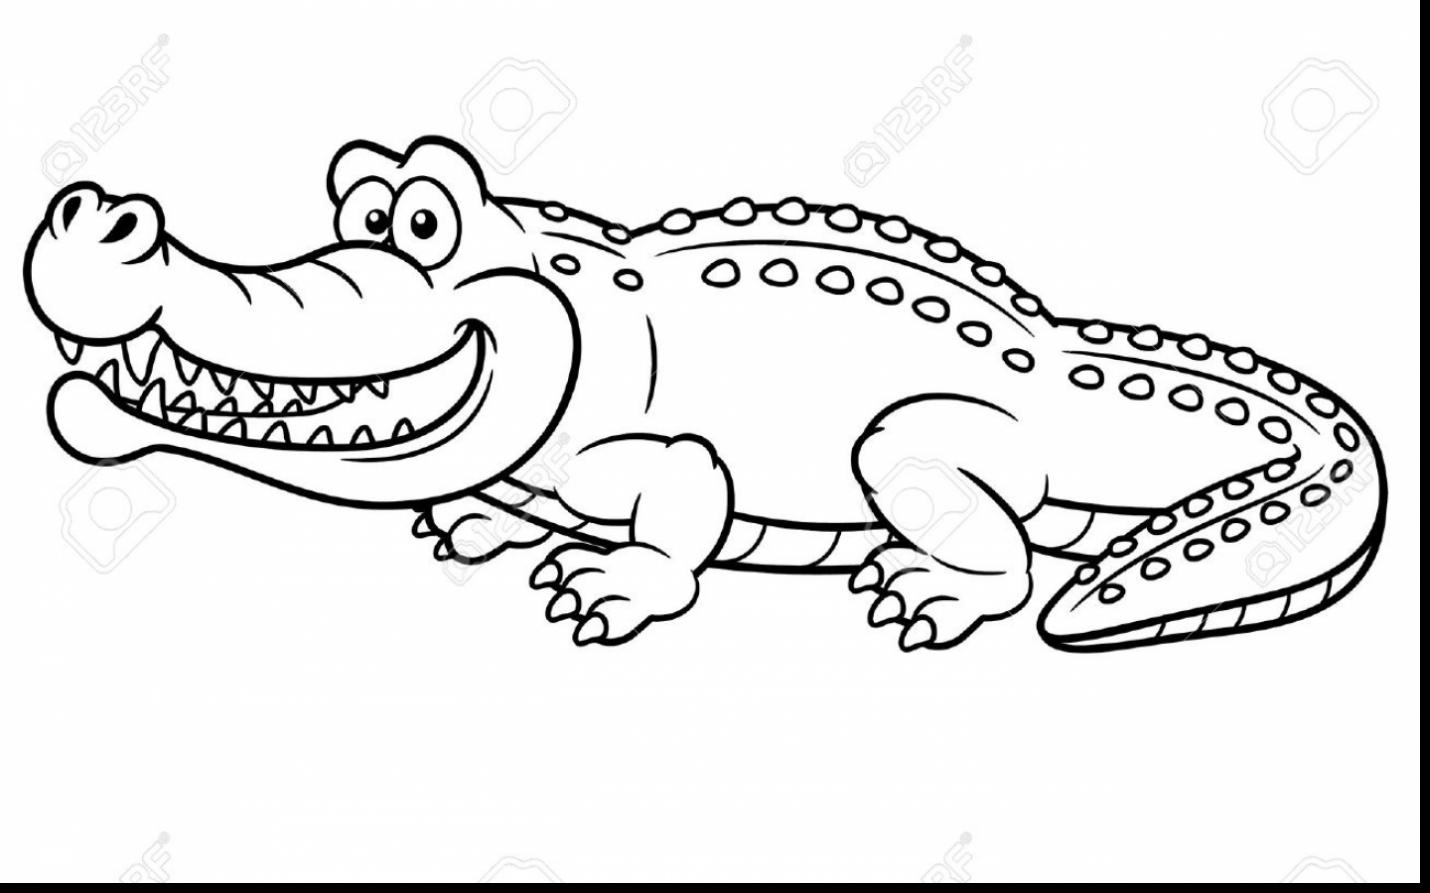 1430x893 Surprising Alligator Coloring Pages With Alligator Coloring Page